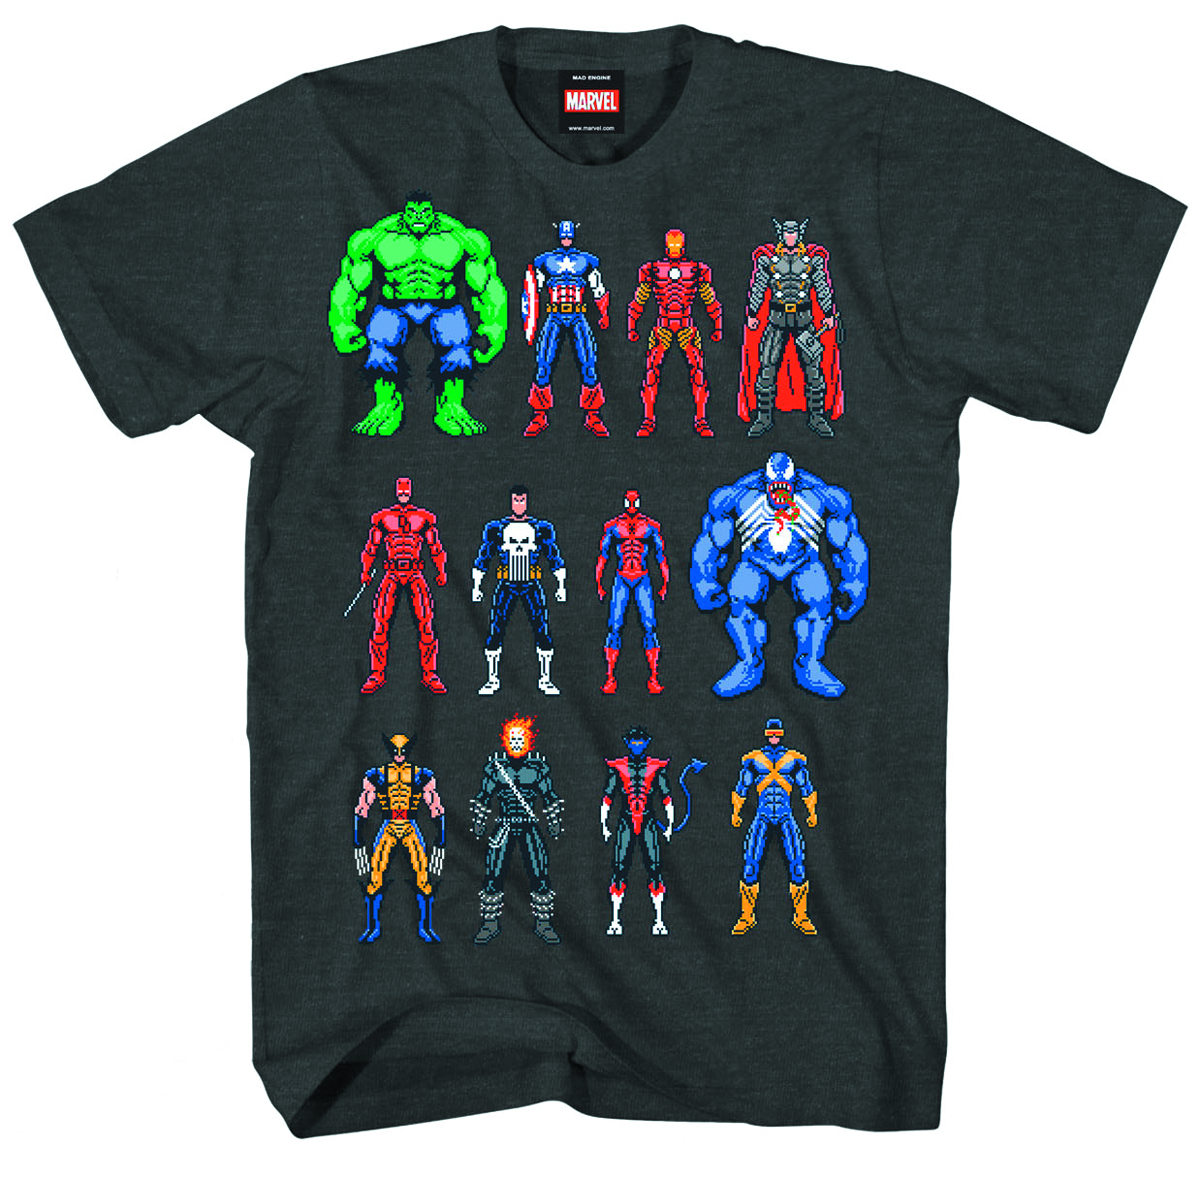 MARVEL HEROES TWELVE UP PX CHAR HTHR T/S XL